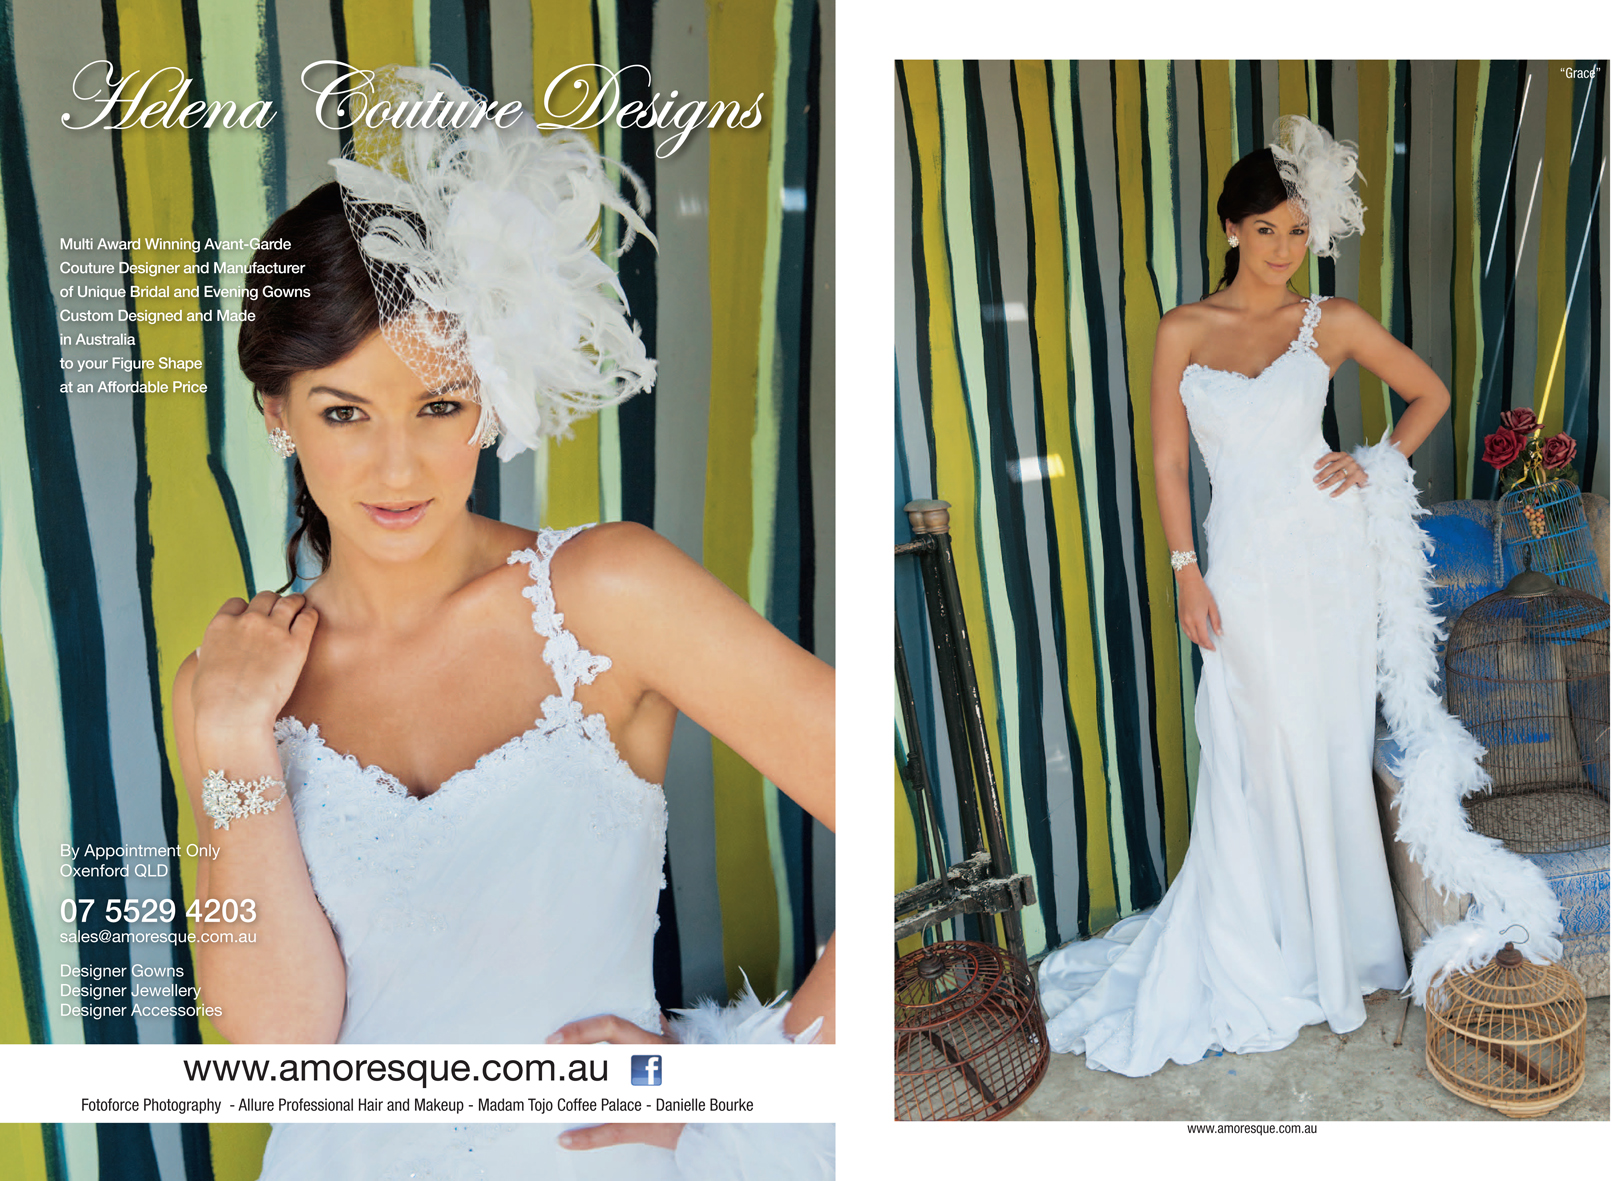 Helena Couture Designs in QLD Brides Magazine Spring 2012.